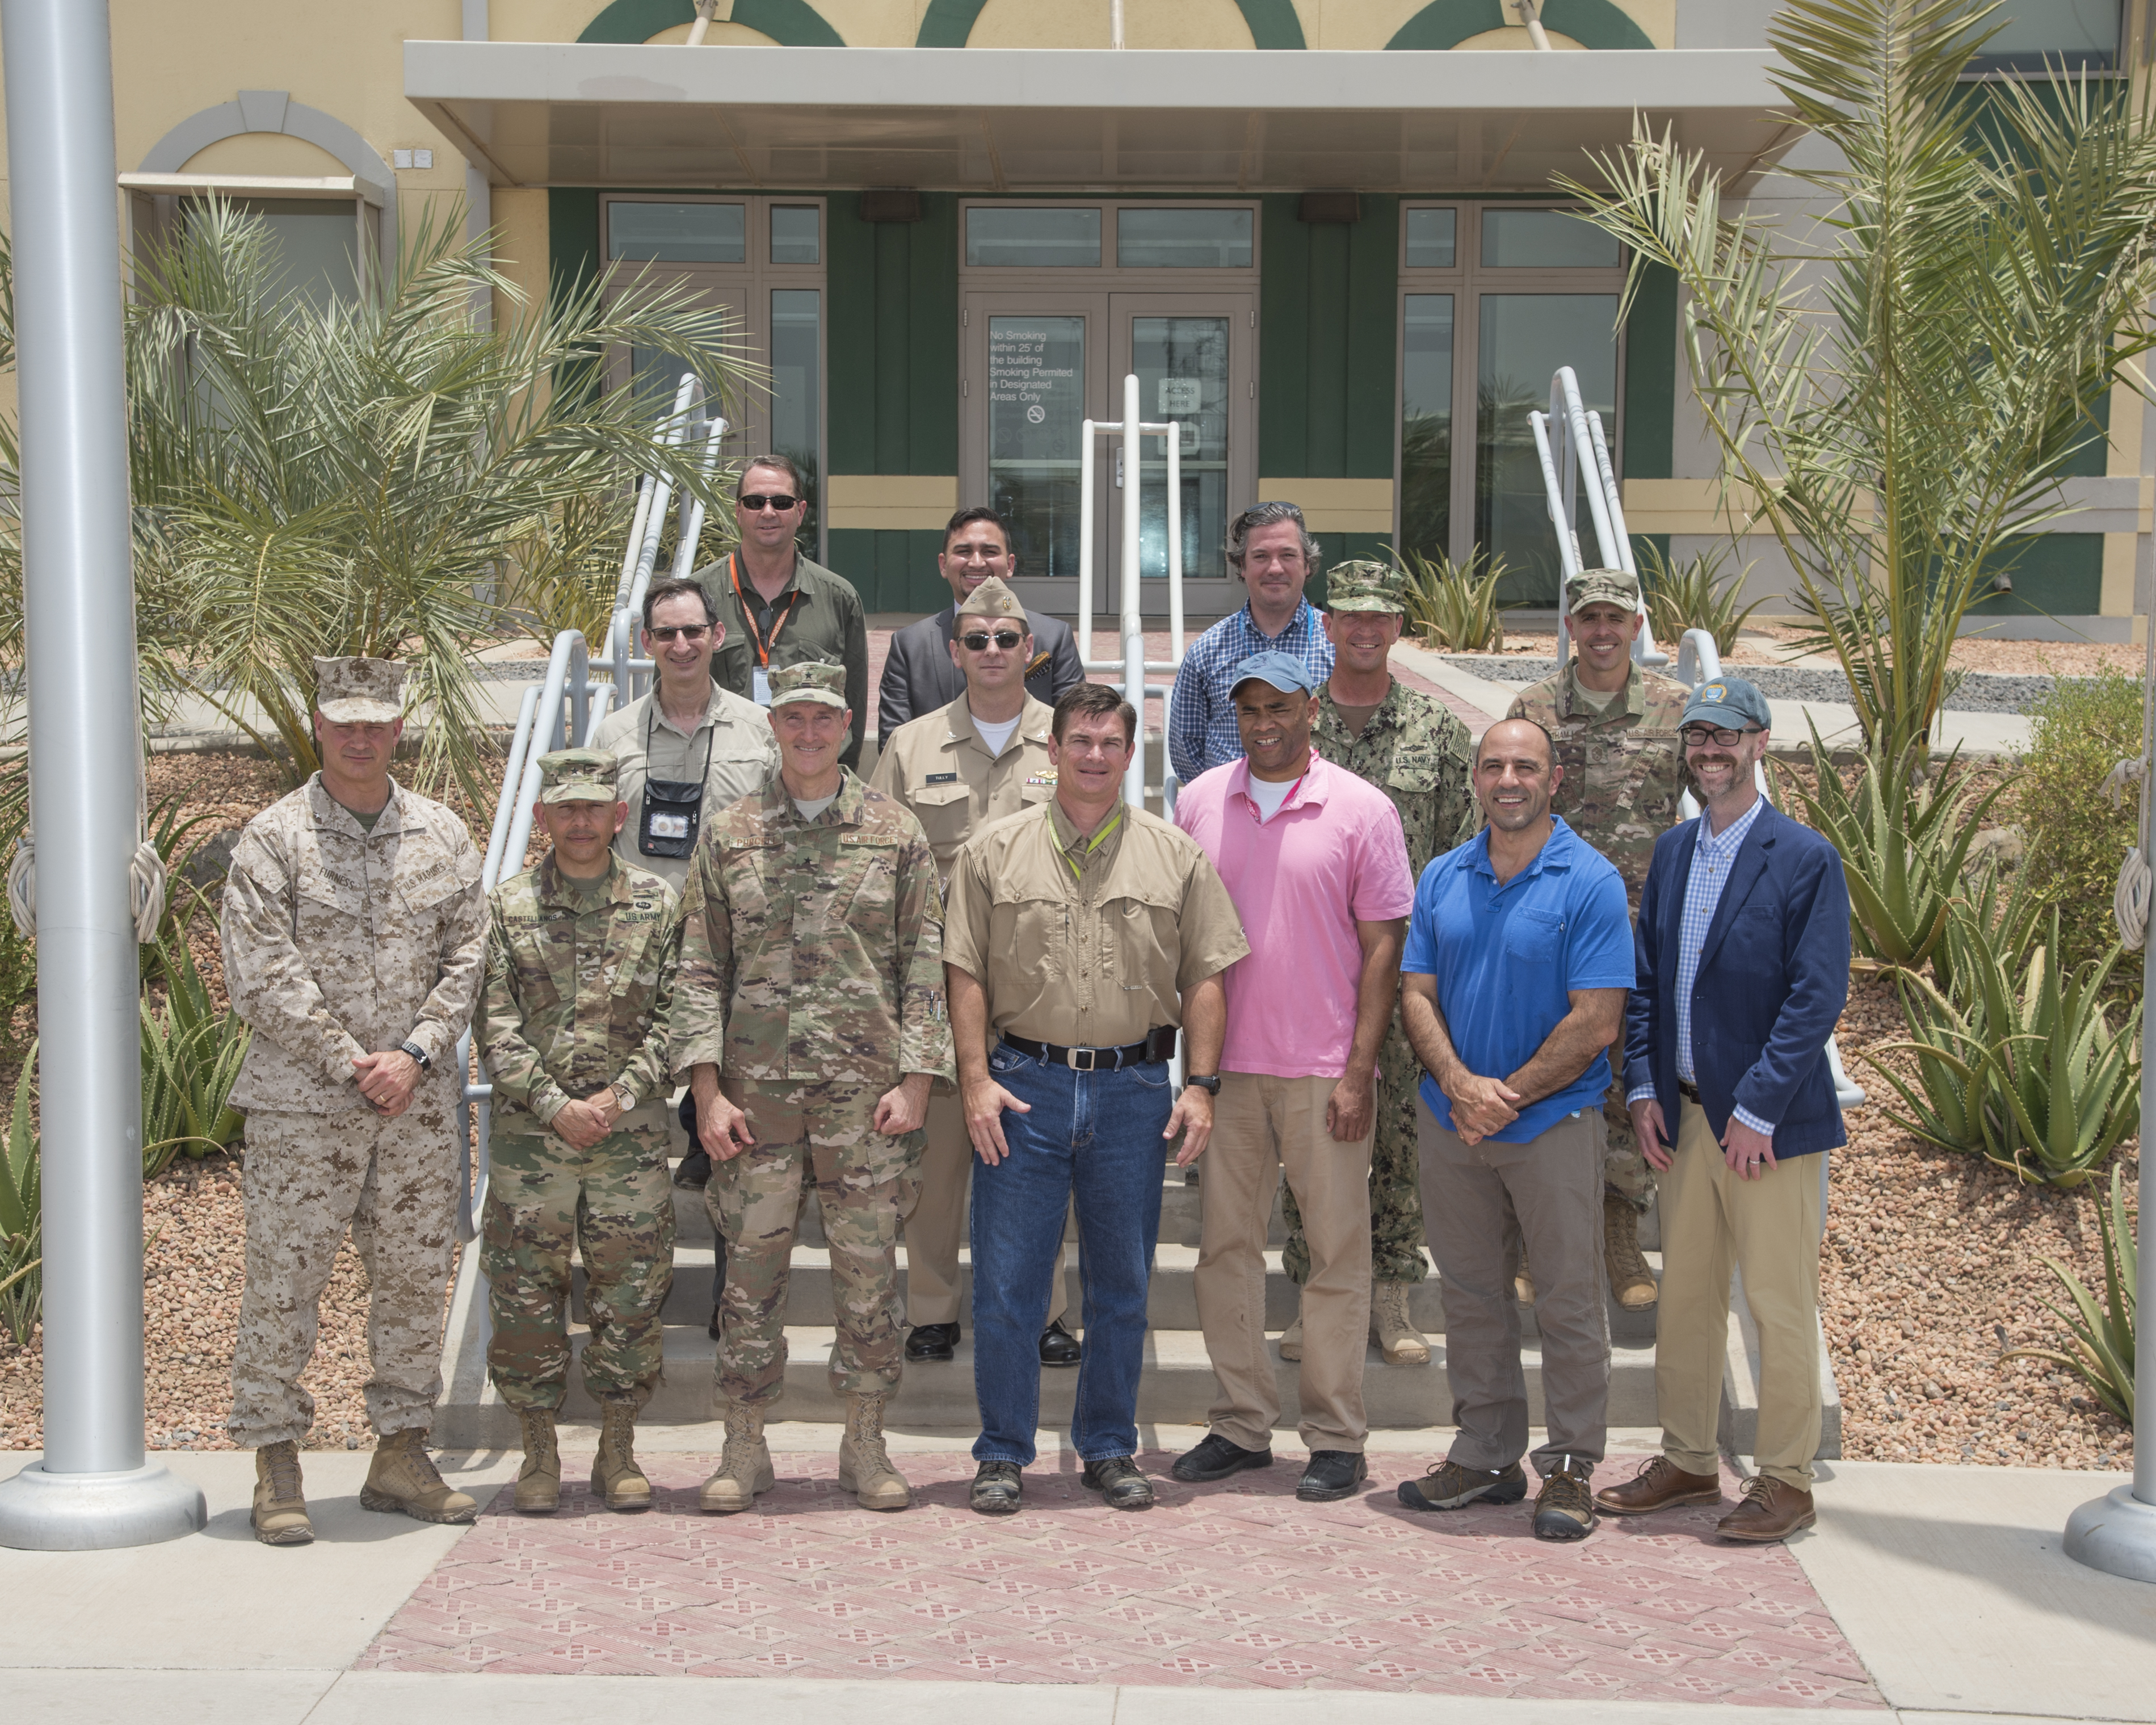 A congressional delegation (CODEL) joins in a group photo with leadership from both the U.S. Embassy-Djibouti and Combined Joint Task Force - Horn of Africa during a three day visit to Camp Lemonnier, Djibouti, on Aug. 26, 2017. From there, the CODEL made day trips to various forward operating locations in the CJTF-HOA area of responsibility to meet U.S. service members and learn more about the U.S. military mission in East Africa. The CODEL included the following congressmen, all of whom are on the House Armed Service Committee; Rep. Austin Scott (R-Ga.) representing the 8th District of Georgia; Rep. Jimmy Panetta (D-Calif.) representing the 20th District of California; and Rep. Marc Veasey (D-Texas) representing the 33rd District of Texas. (U.S. Air National Guard photo by Tech. Sgt. Joe Harwood)